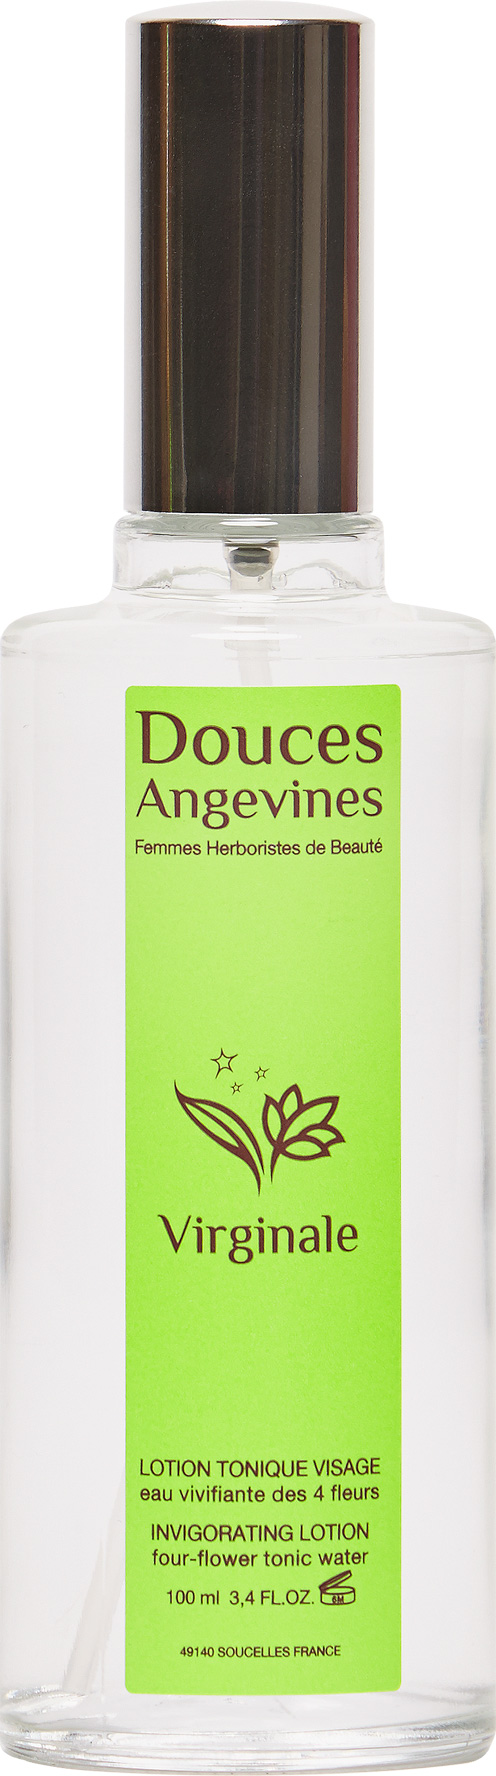 Doux Good - Douces Angevines - Virginale, eau tonique vivifiante visage